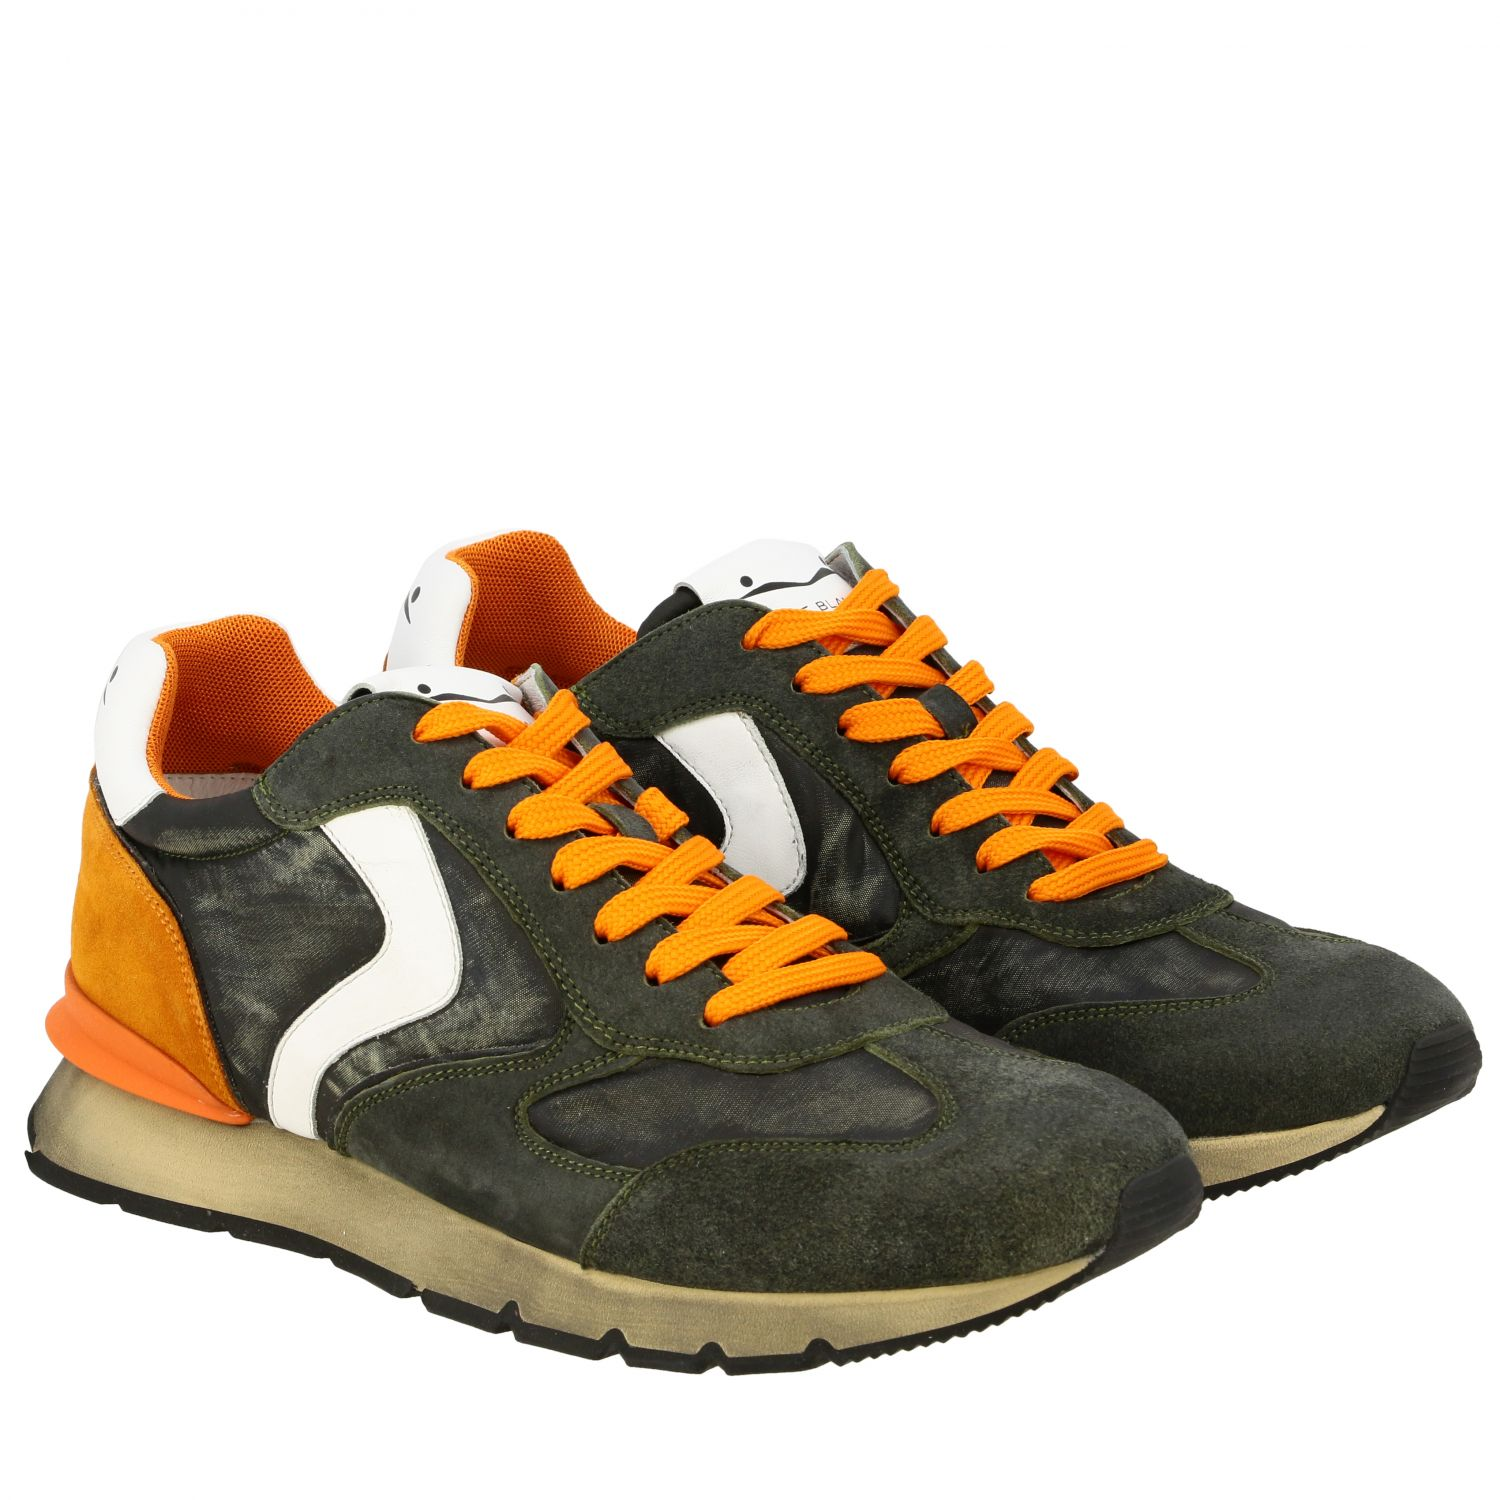 Sneakers men Voile Blanche military 2